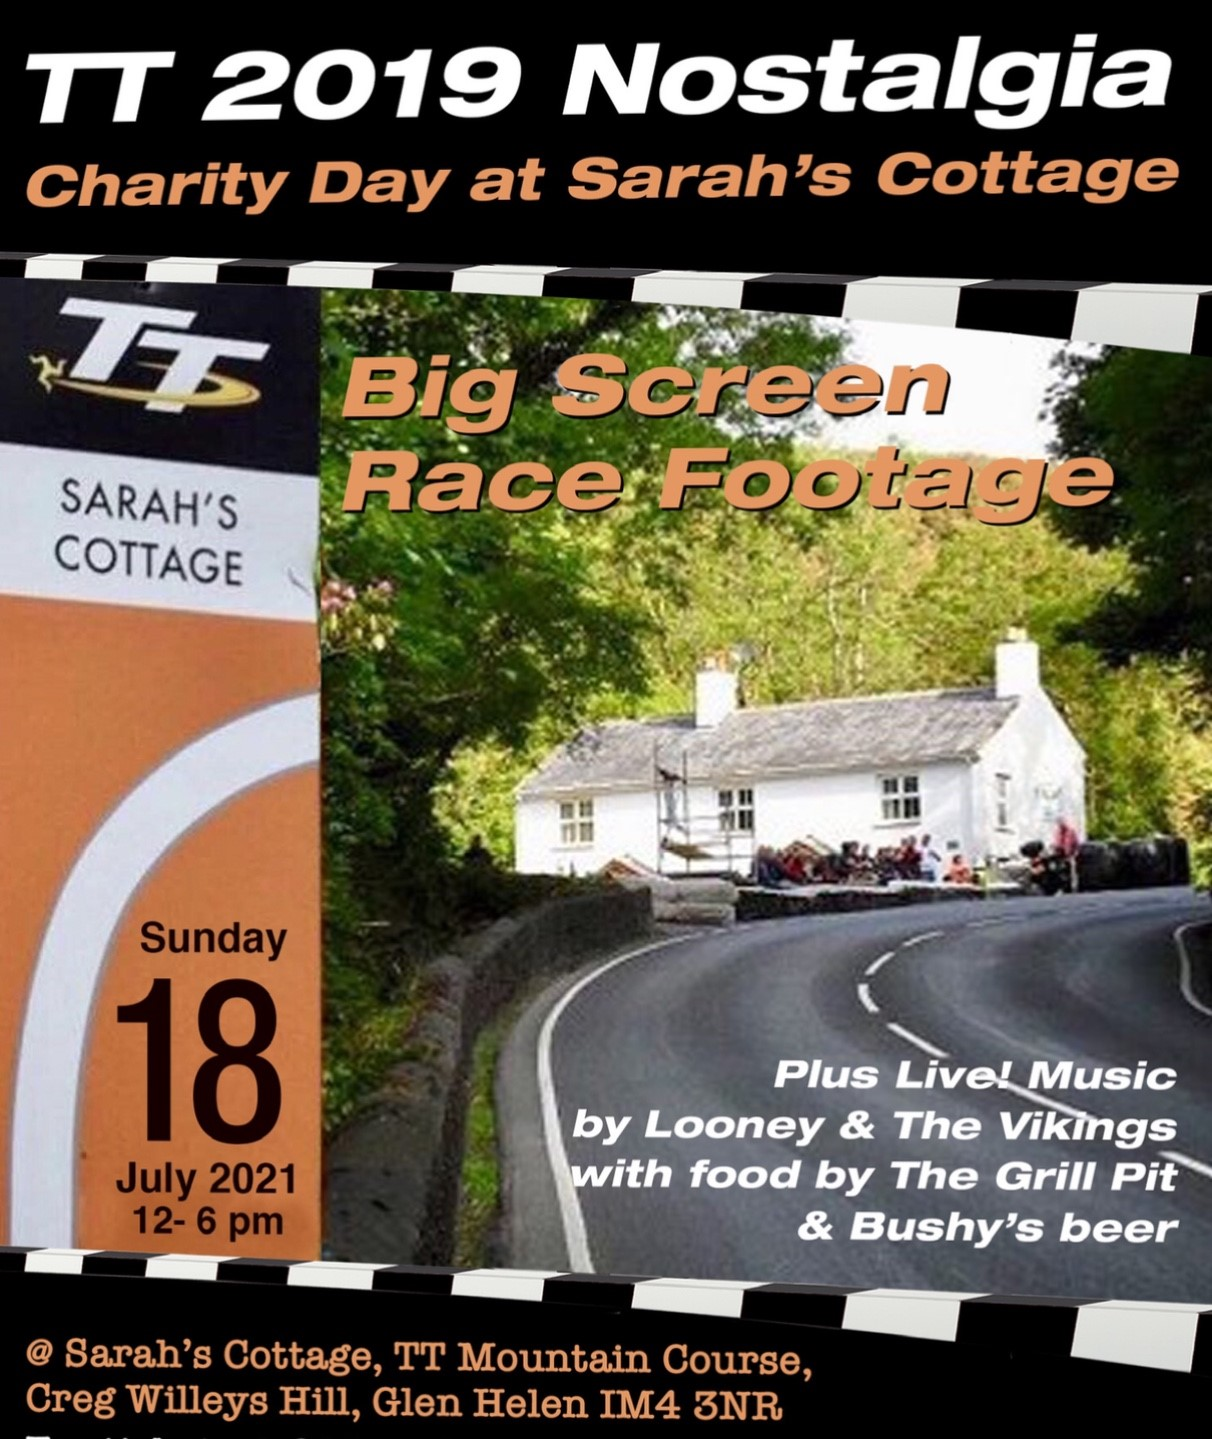 TT 2019 Nostalgia -  Charity Day at Sarah's Cottage - 18th July 2021 Big Screen Race Footage + Live! Music by Looney & The Vikings on Jul 18, 12:00@Sarah's Cottage, TT Mountain Course - Buy tickets and Get information on RS PROMOTIONS